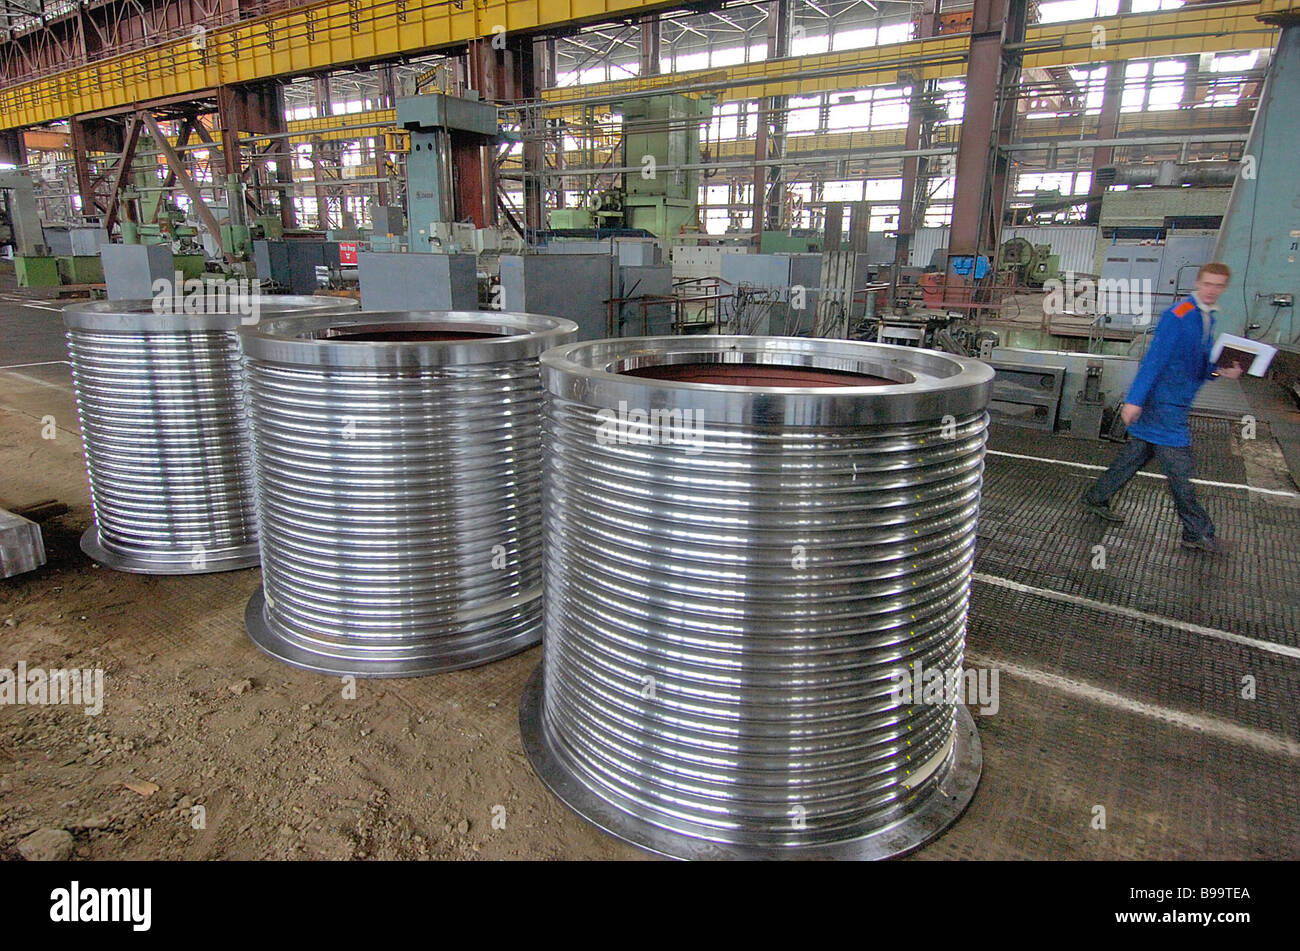 Assembling units and components of EKG 20 excavators with 20 cubic meter buckets at Urals Heavy Engineering Works - Stock Image